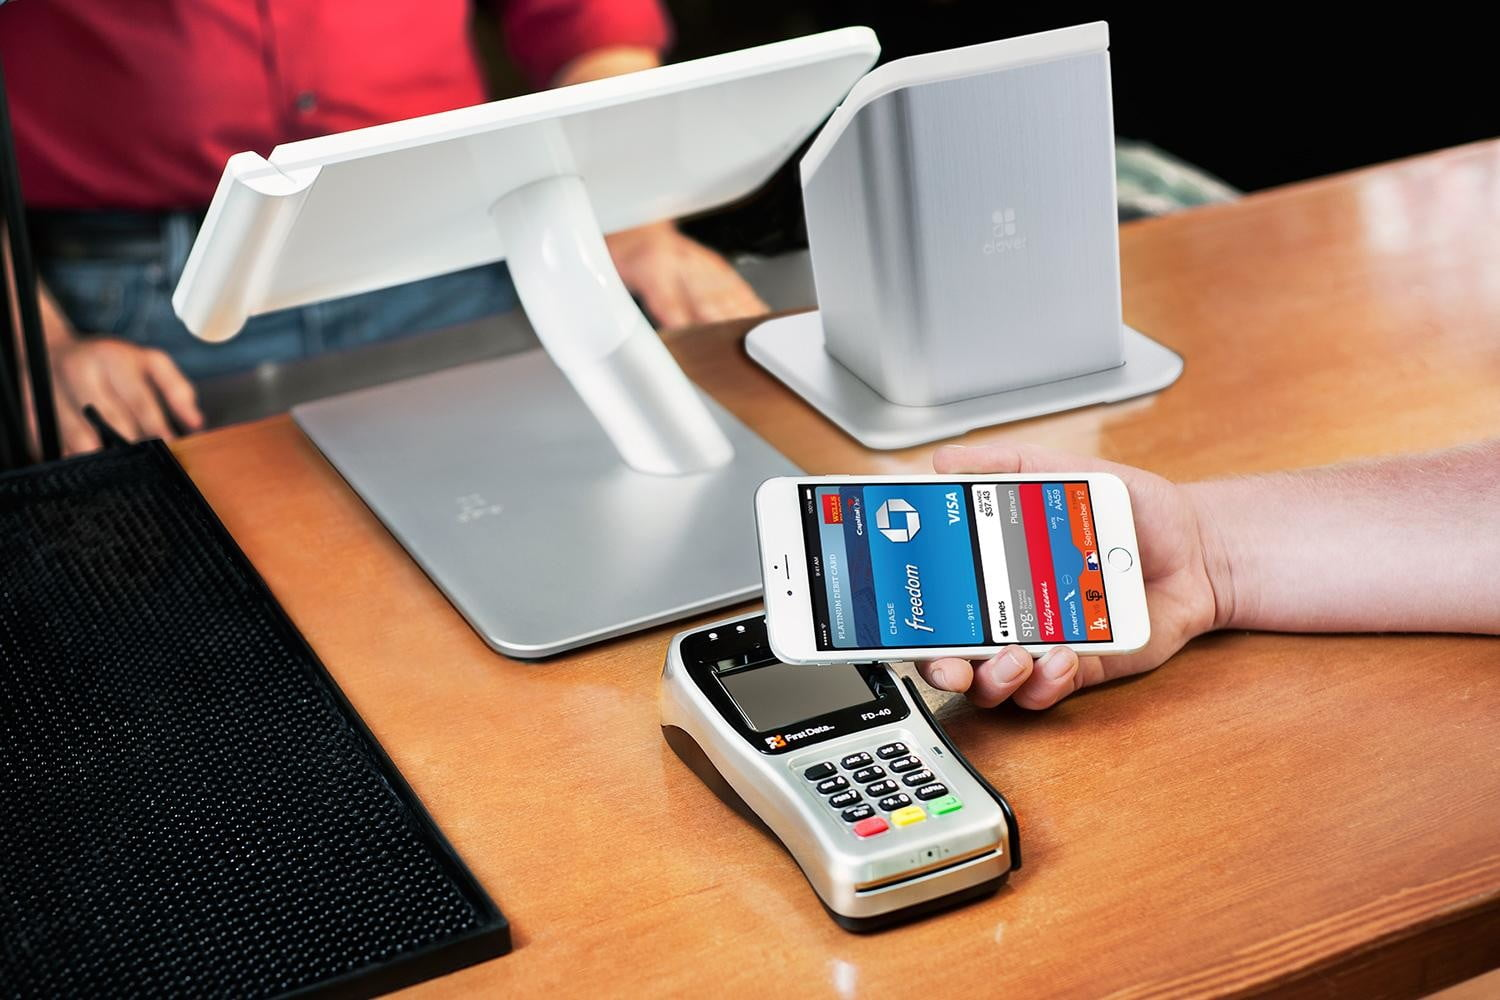 Apple Pay: Here's a List of the Companies That Support It